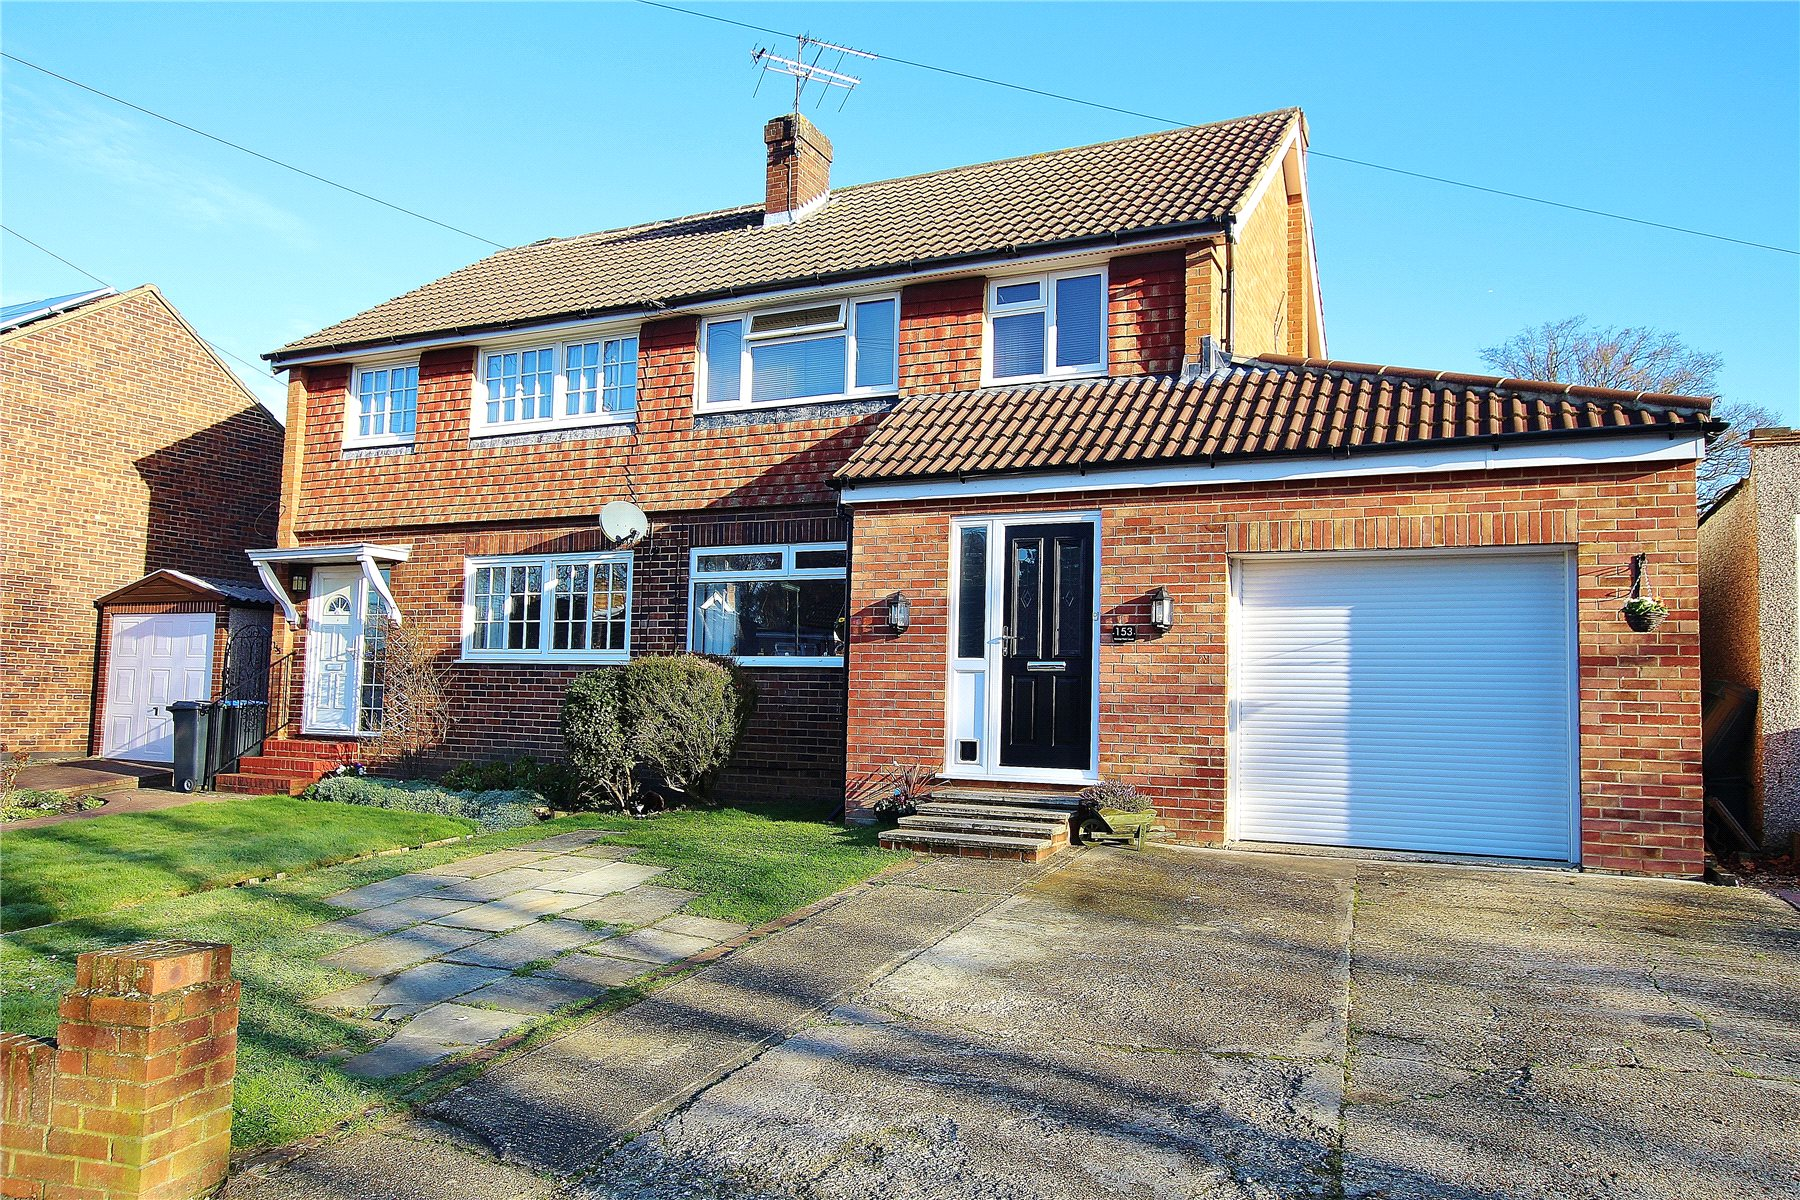 3 Bedrooms Semi Detached House for sale in Hermitage Woods Crescent, St.Johns, Woking, Surrey, GU21